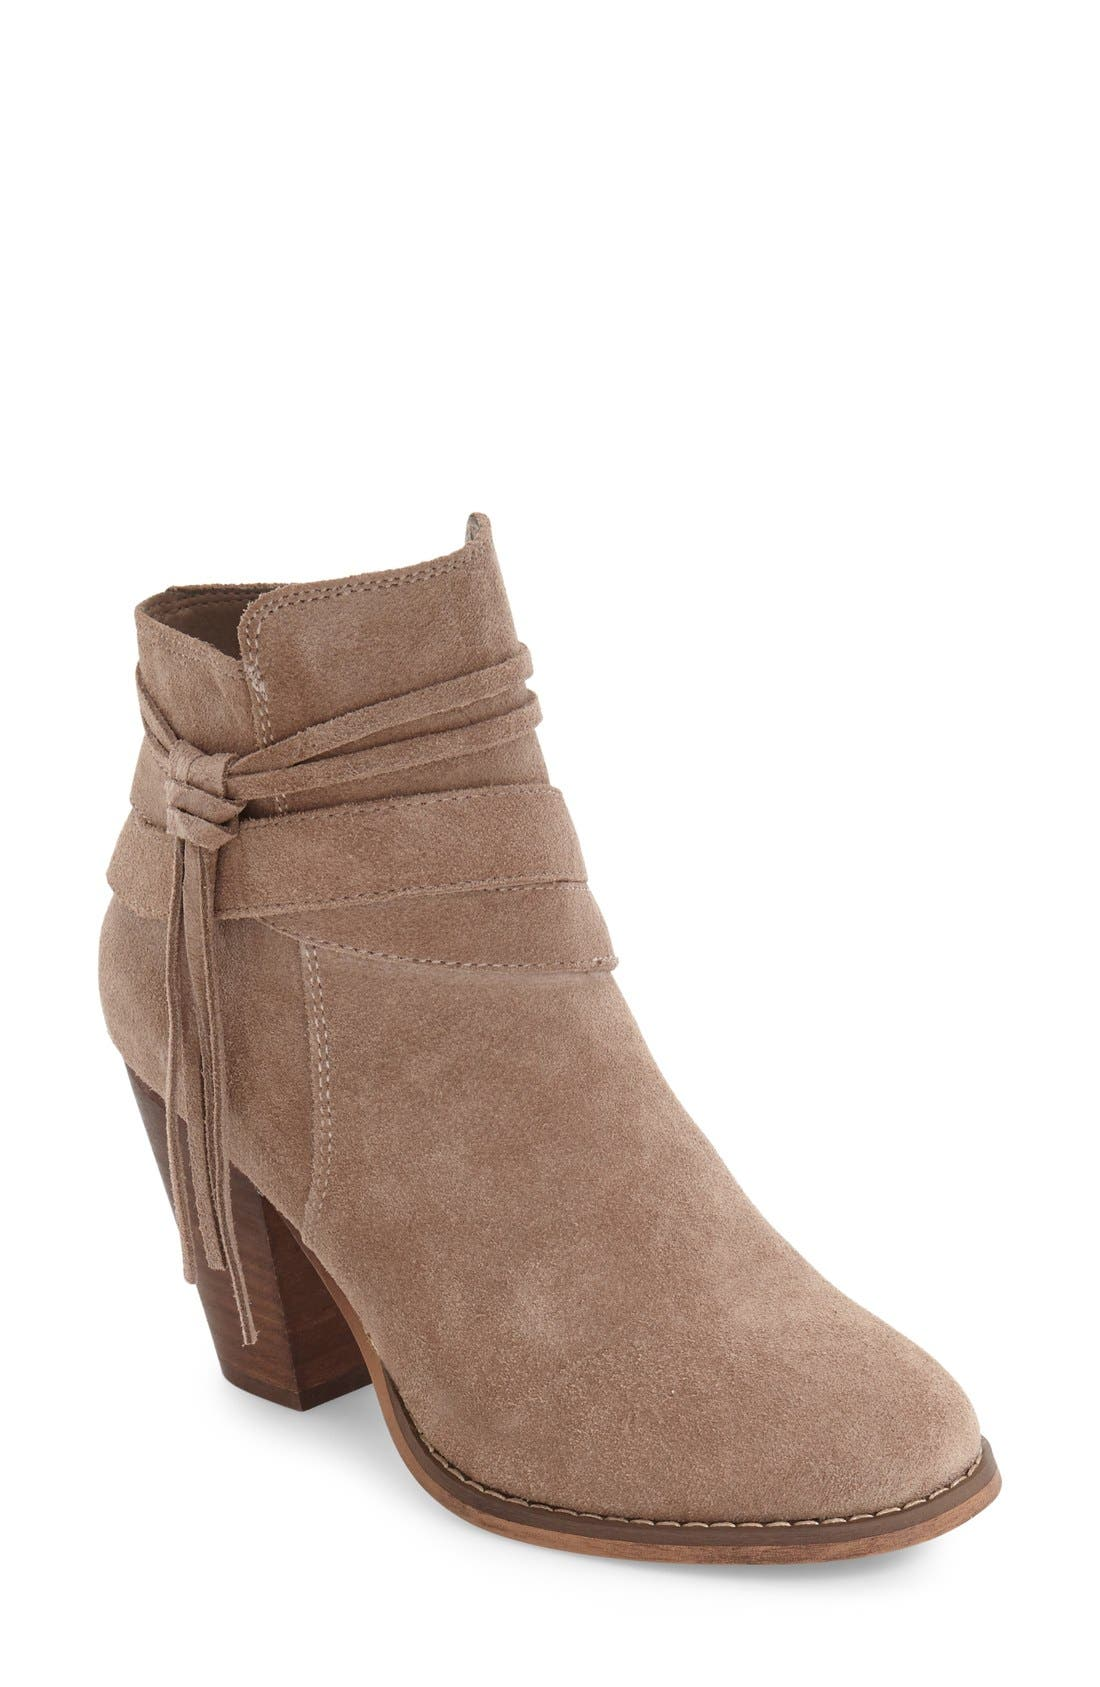 Rumi Bootie,                             Main thumbnail 1, color,                             Taupe